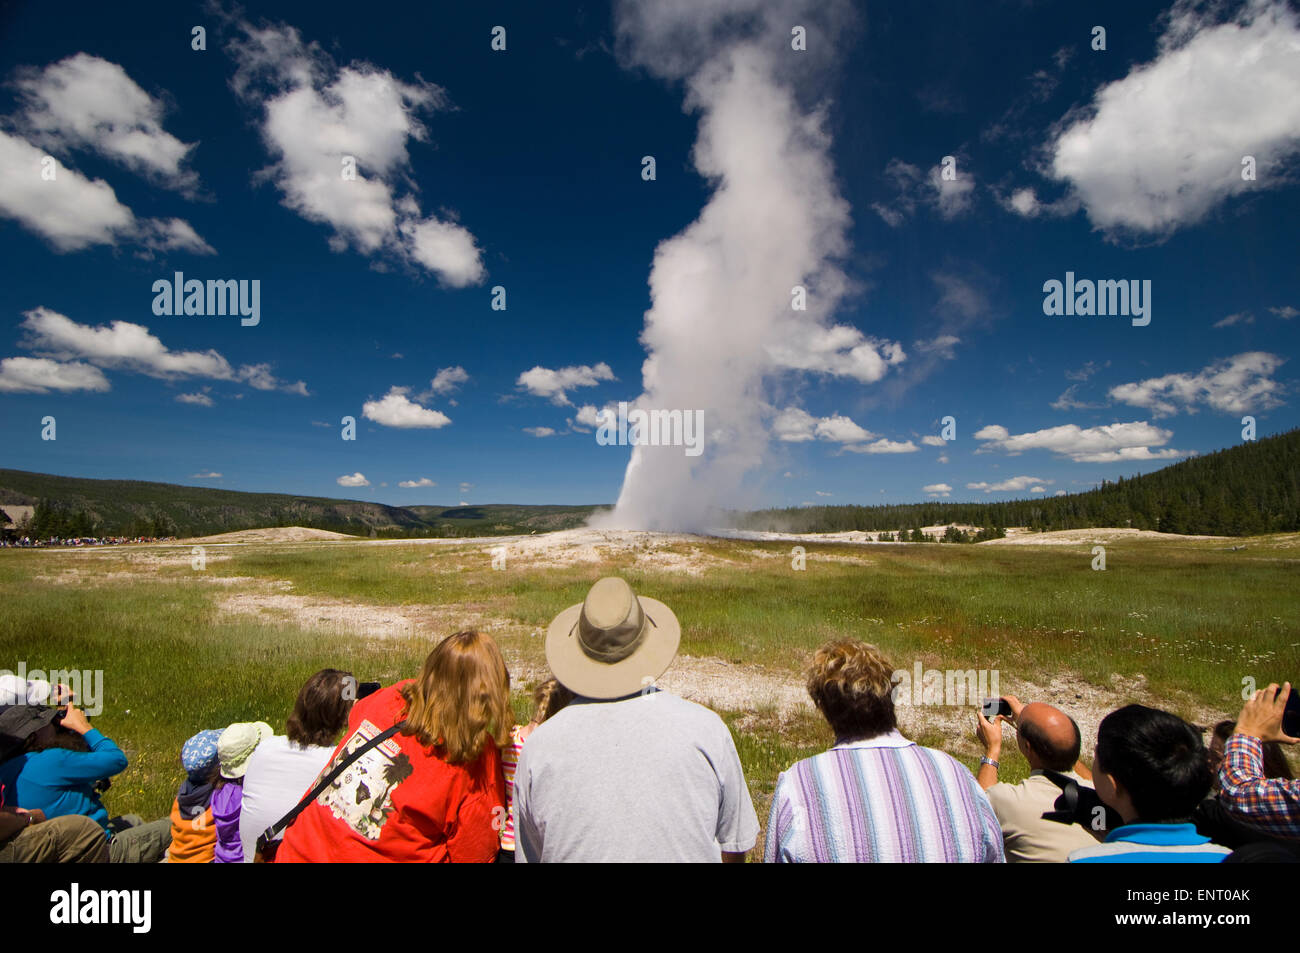 People watching Old Faithful Geyser being faithful. Yellowstone National Park, Wyoming, USA. - Stock Image